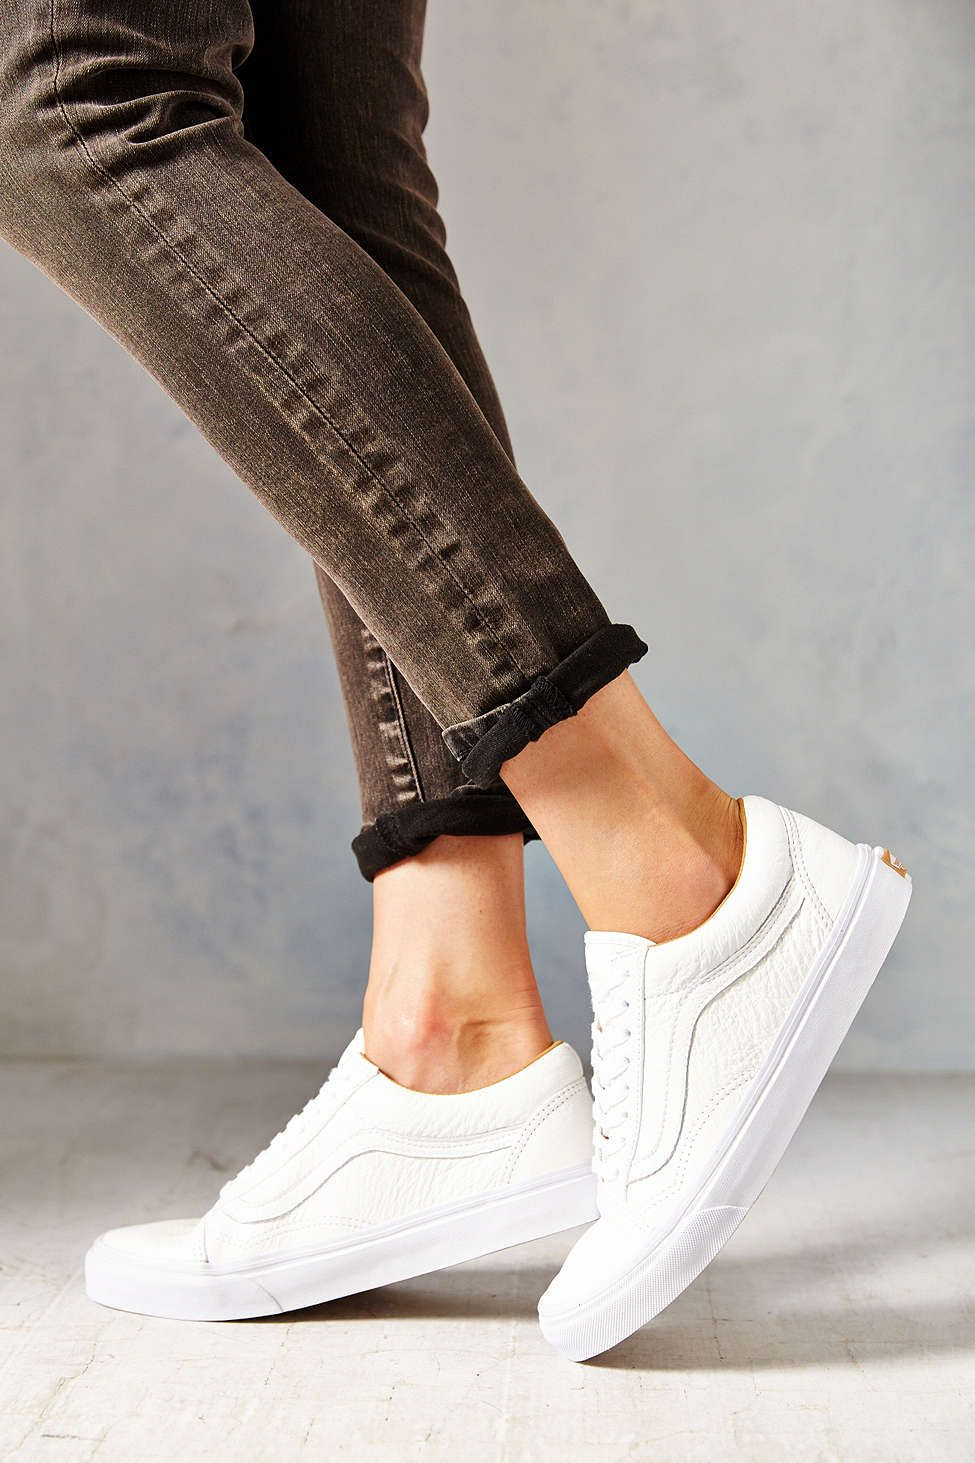 Vans Old Skool Premium Leather Low-Top Women's Sneaker